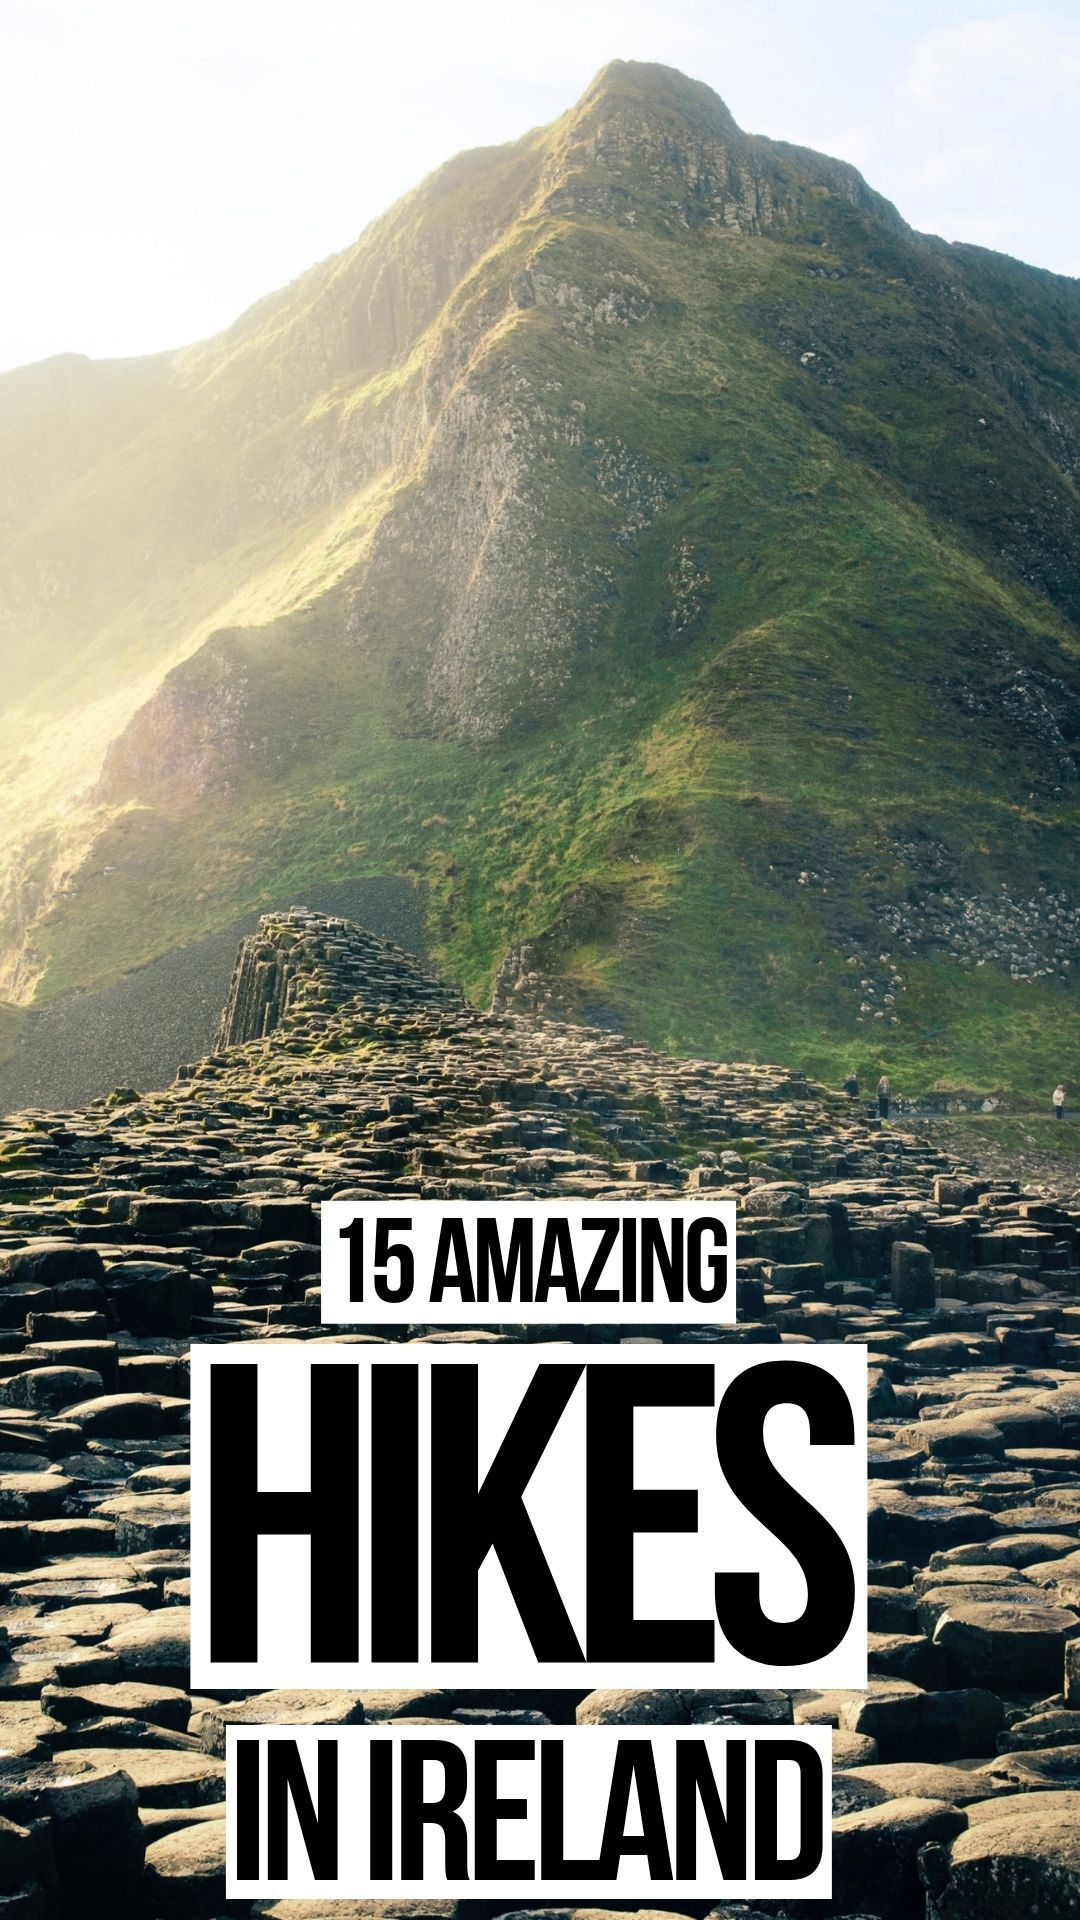 Hiking in Ireland? Here are 15 Hikes in Ireland You'll Love (Easy to Hard)